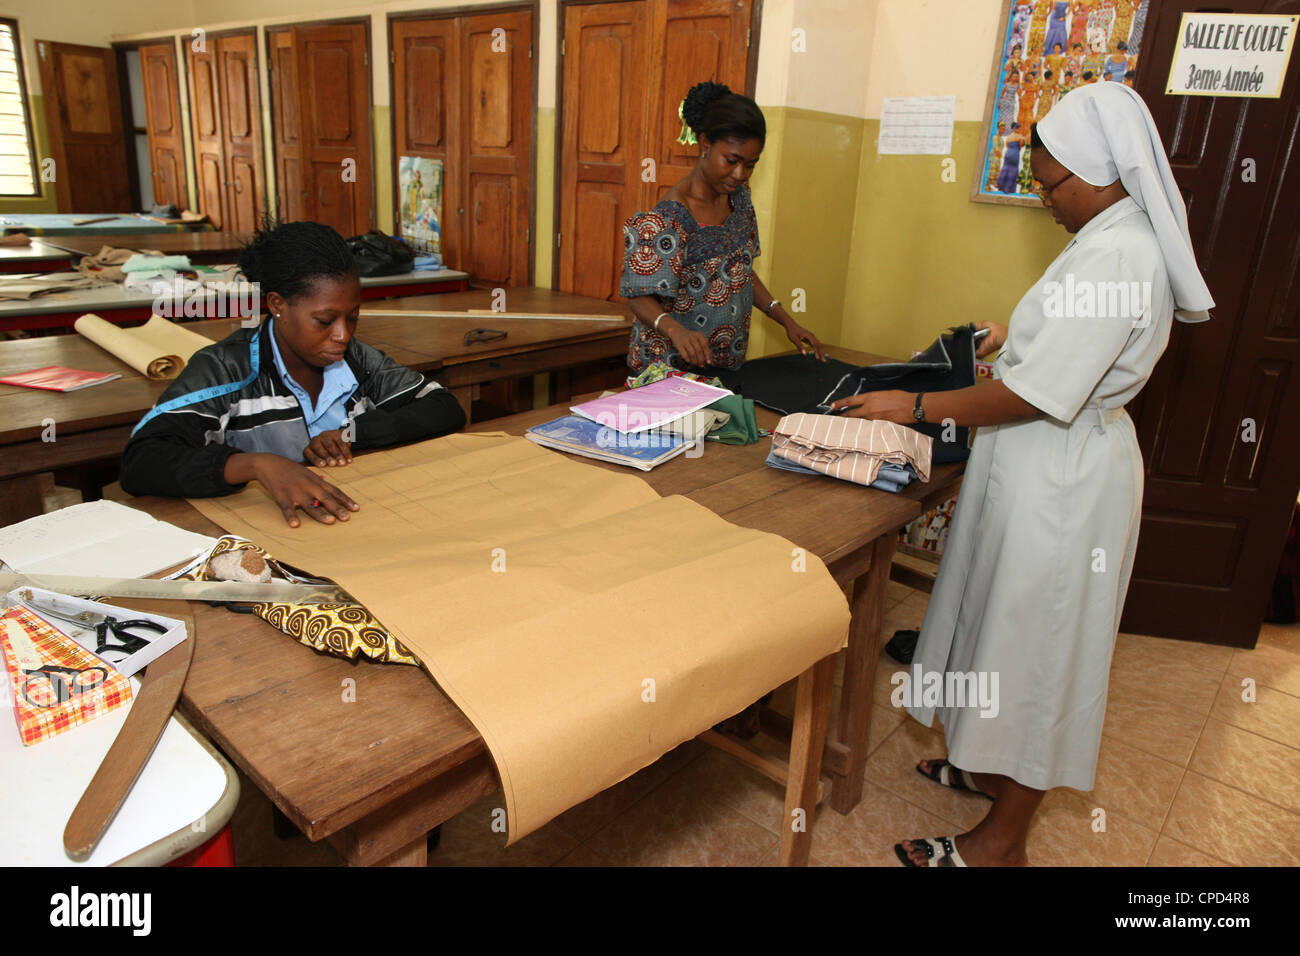 Tailoring workshop in a Catholic high school, Lome, Togo, West Africa, Africa - Stock Image